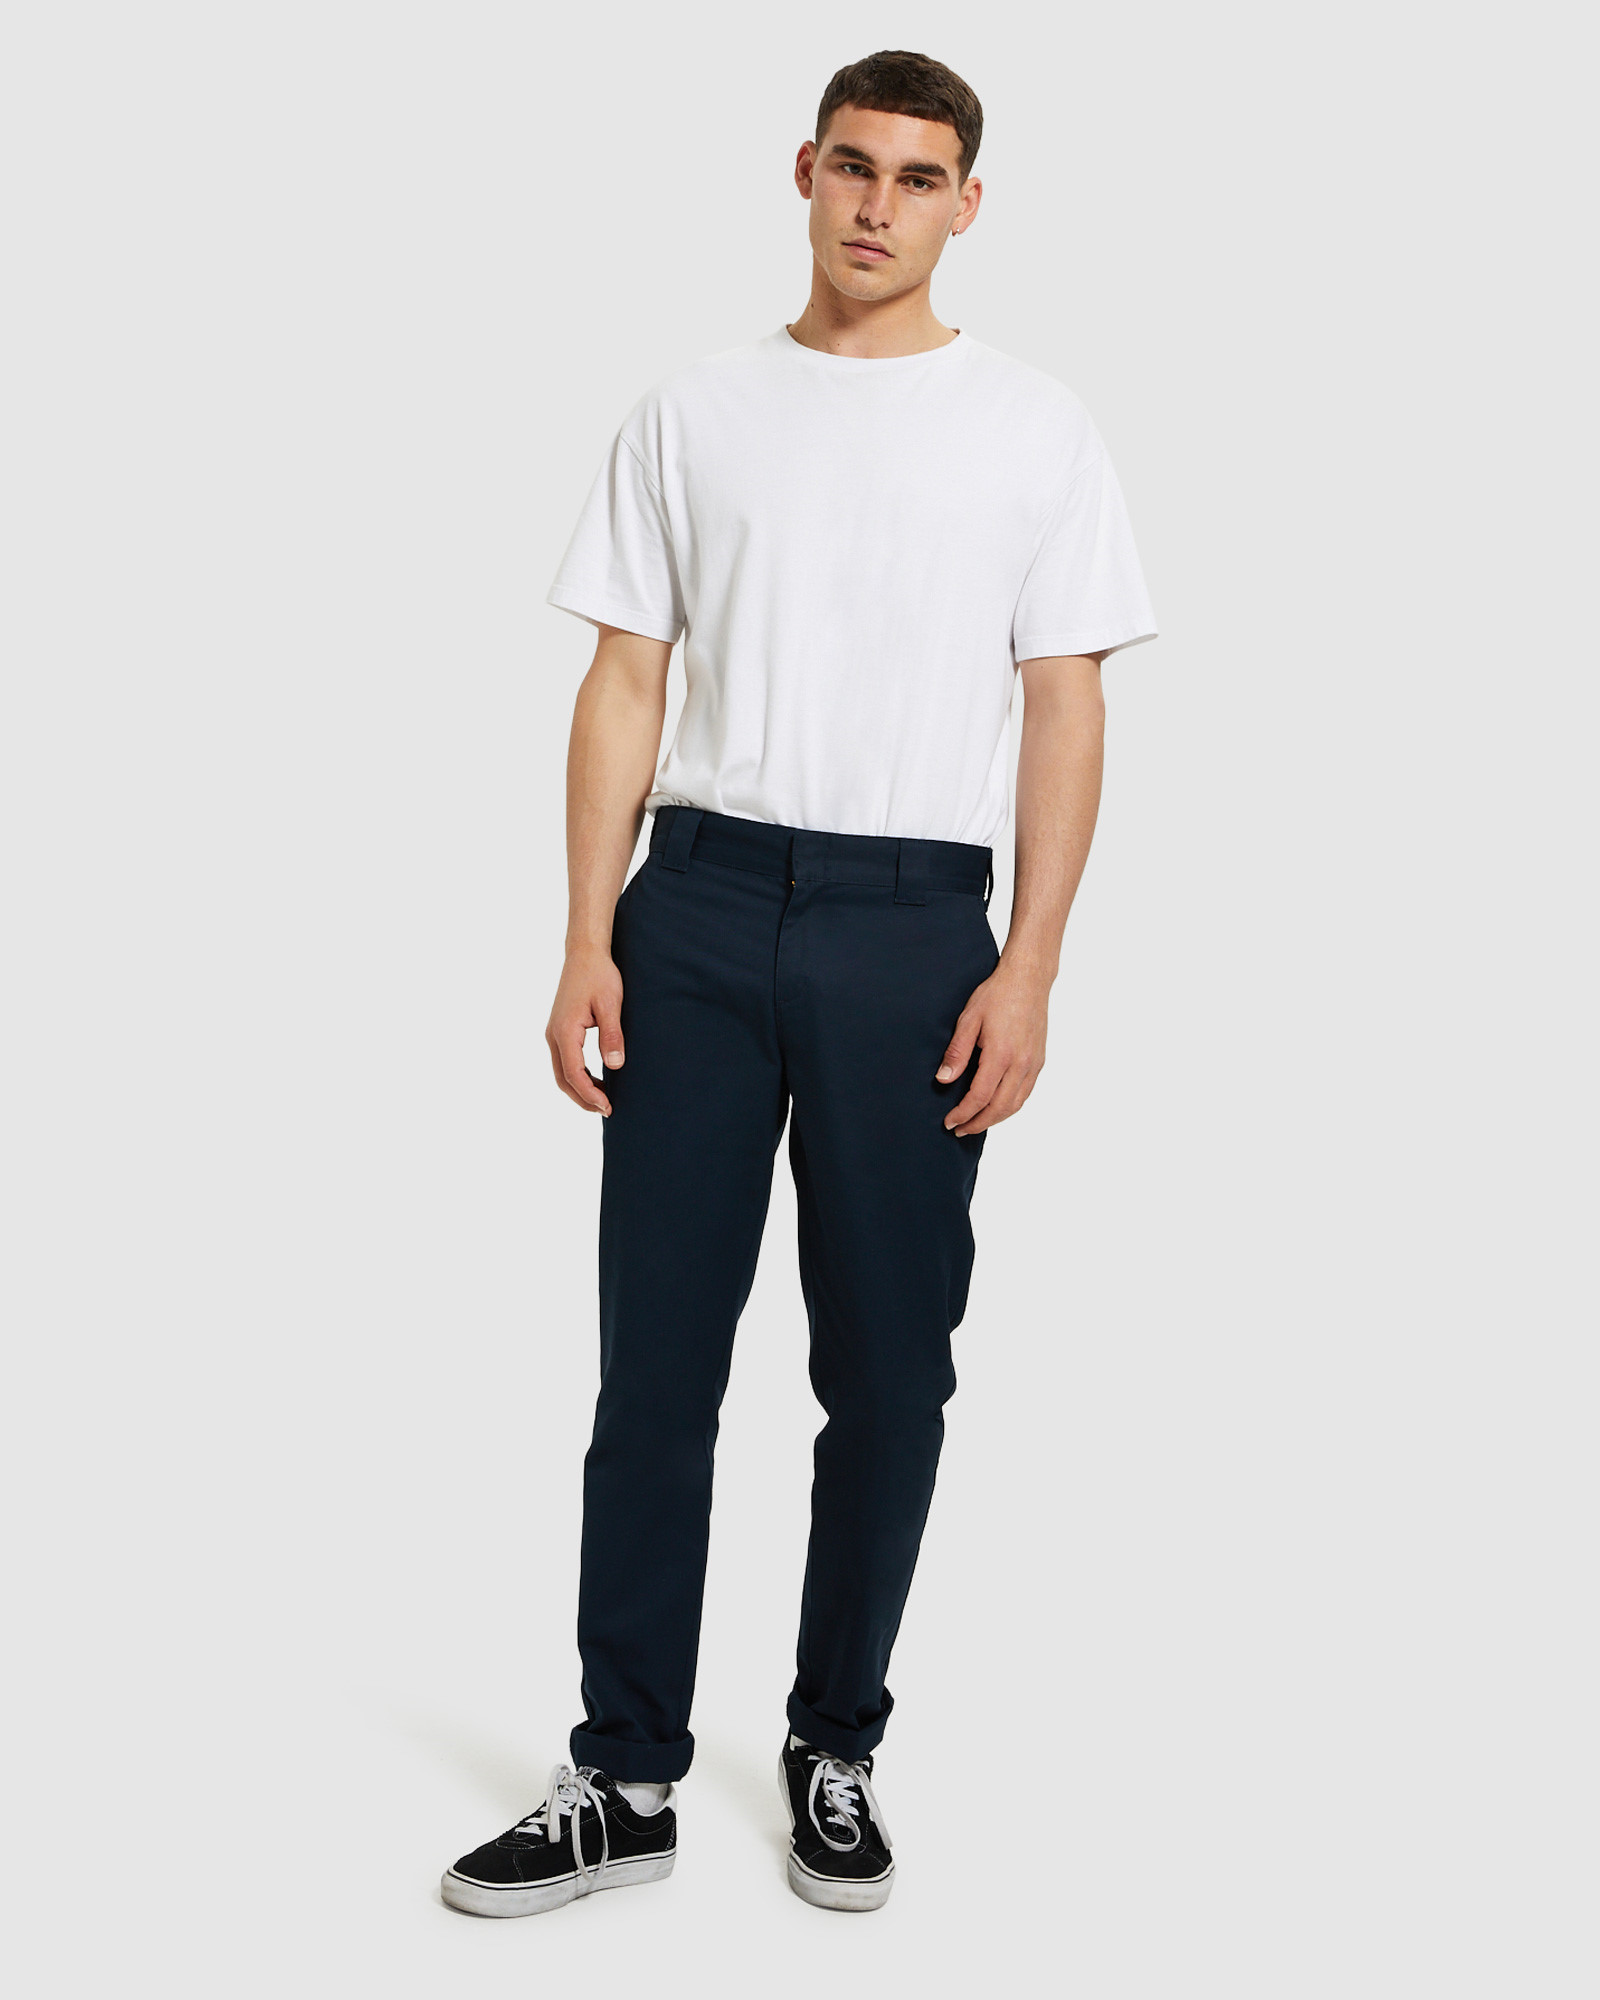 Dickies 872 Navy Pants Chinos Clothing Shop Mens General Tendencies Short 28 Online